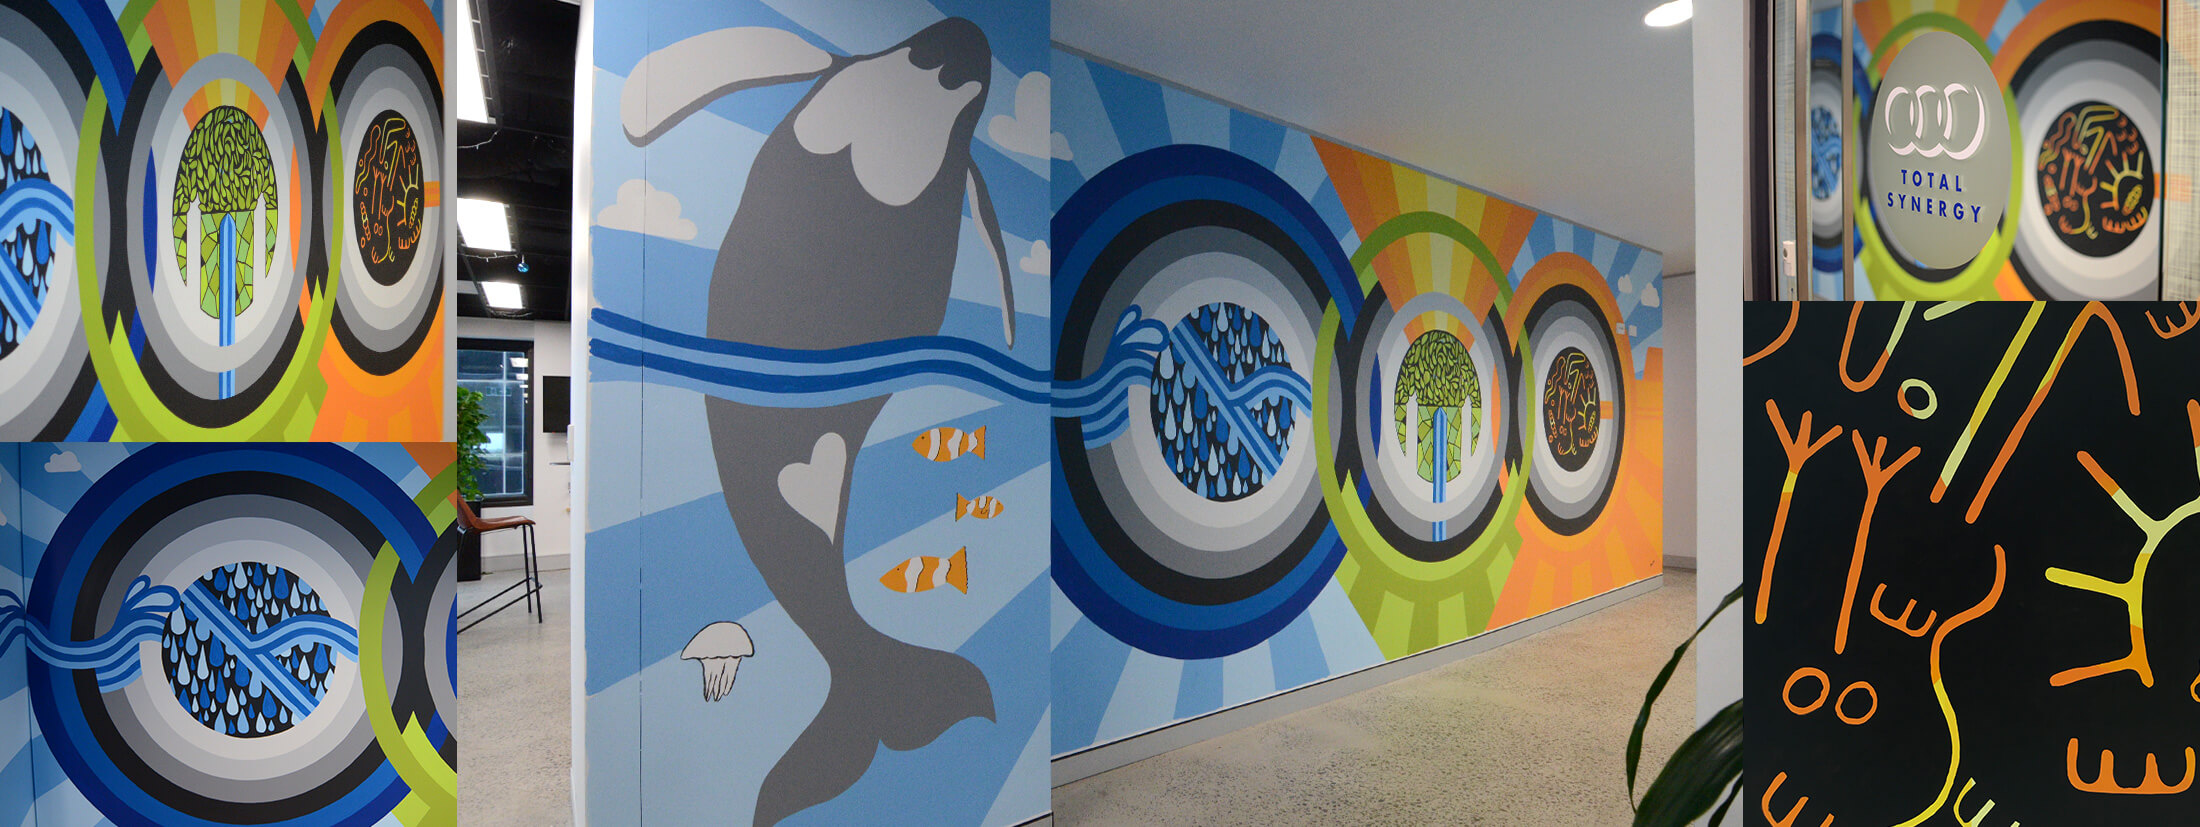 The story behind Total Synergy's office mural.